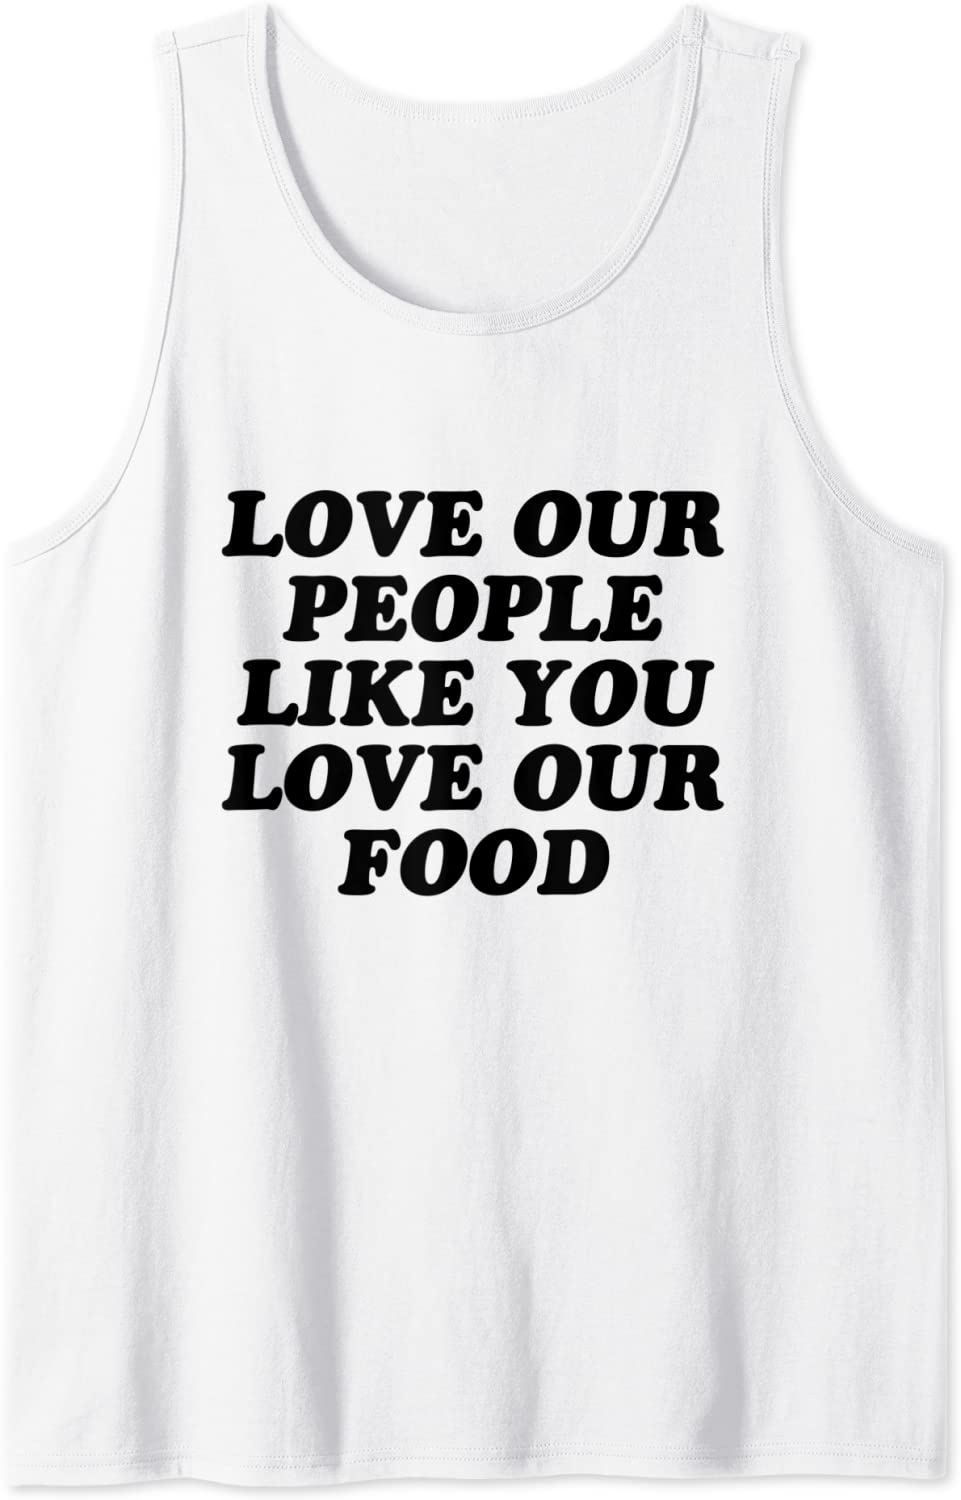 Love Our People Like You Love Our Food - Stop Asian Hate Tank Top